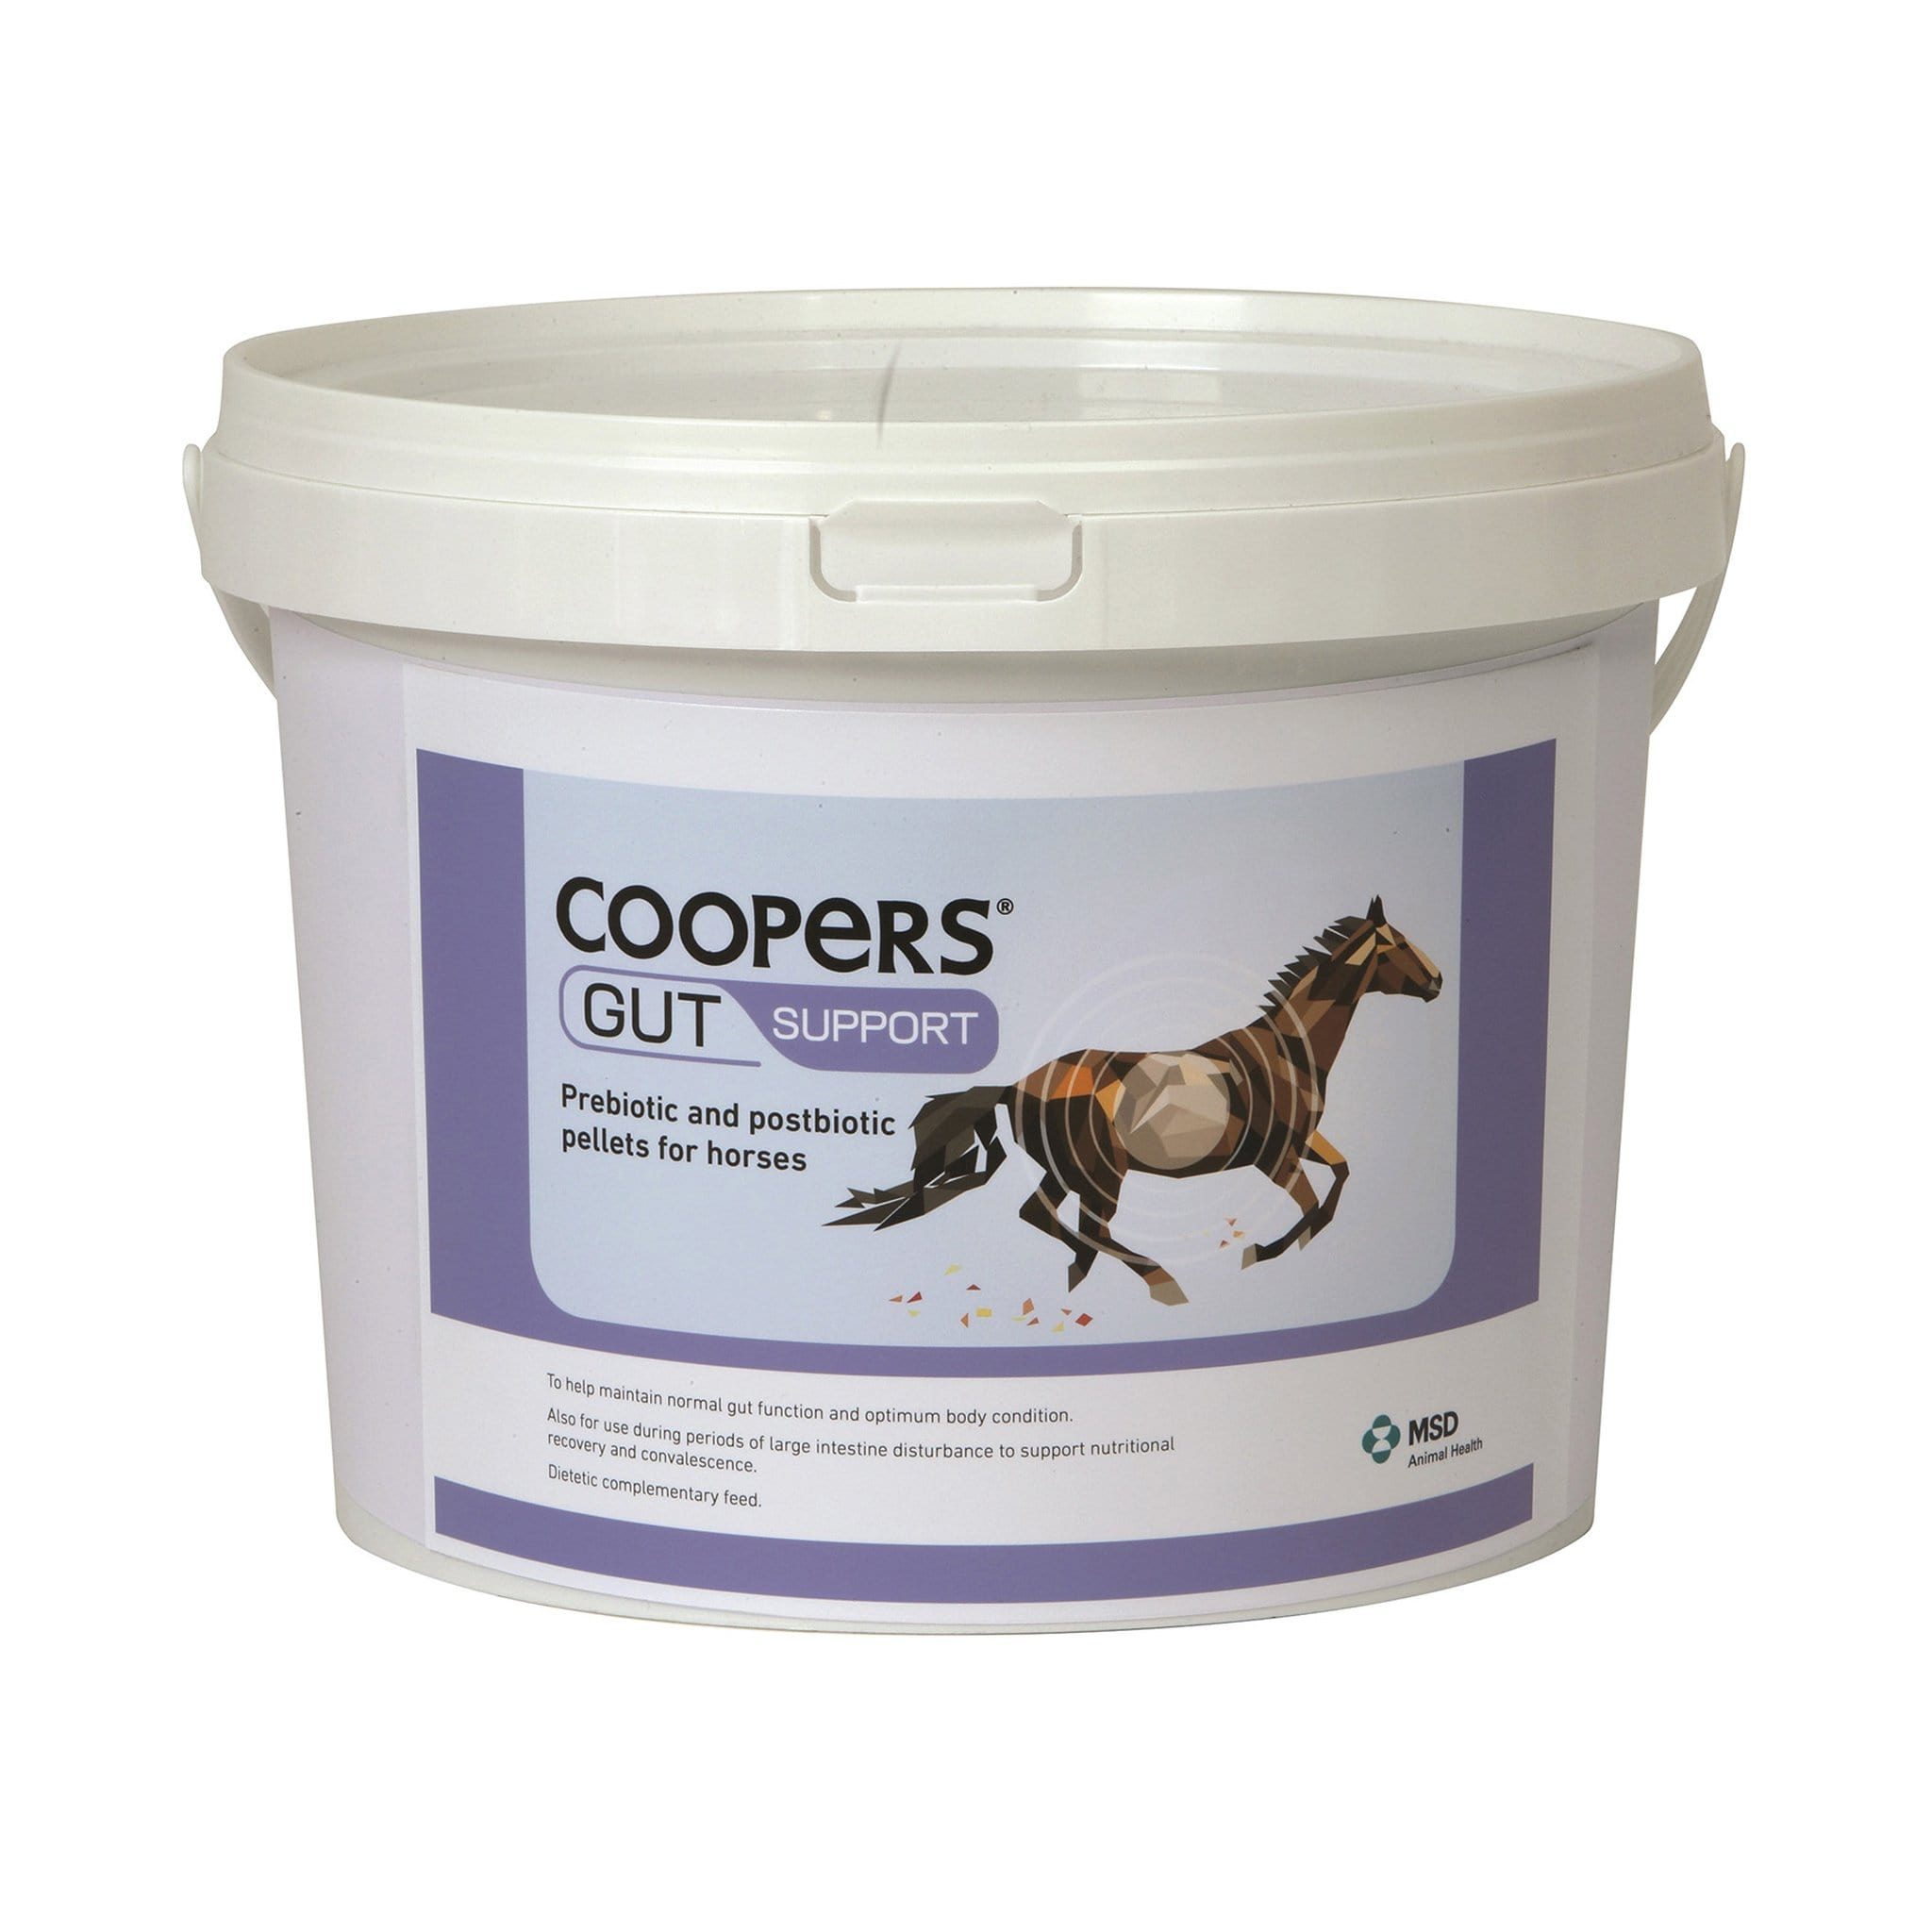 MSD Animal Health Coopers Gut Support 5KG ITV0670